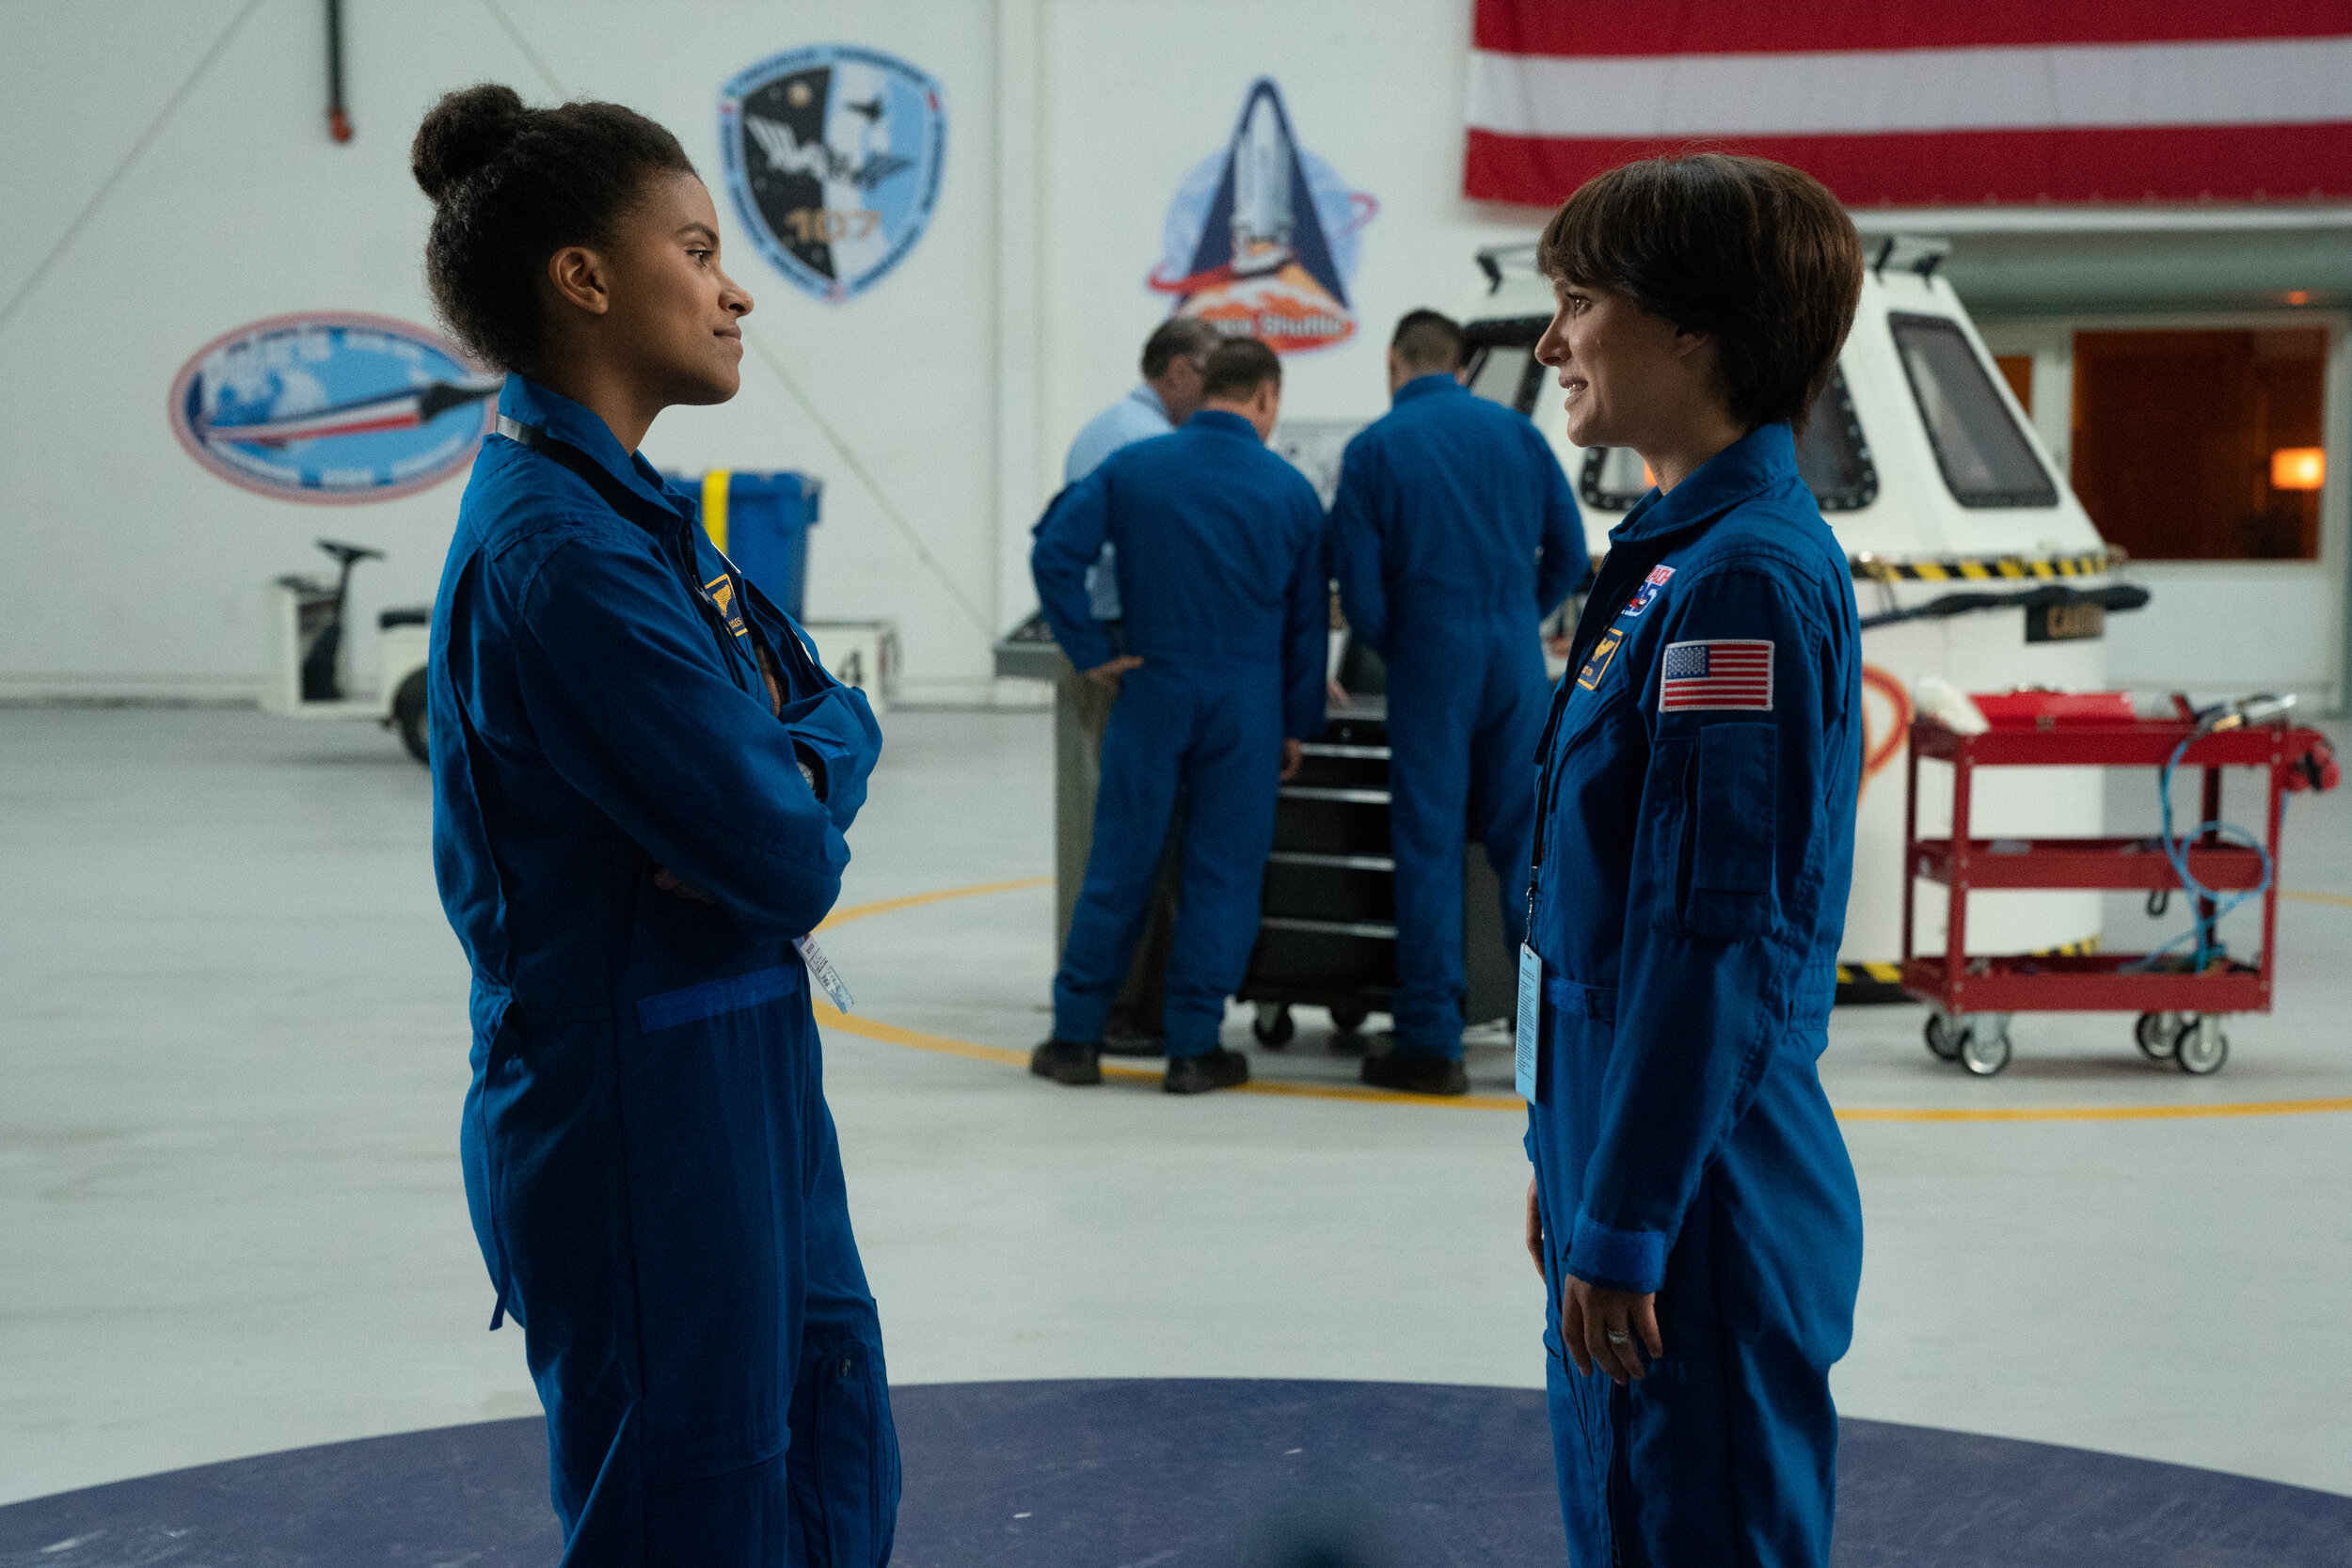 """Astronaut Lucy Cola (Natalie Portman, right) befriends younger astronaut Erin Eccles (Zazie Beetz), even though both are competing for the same spot on a space mission, in the drama """"Lucy in the Sky."""" (Photo by Hilary B. Gayle, courtesy of 20th Century Fox.)"""